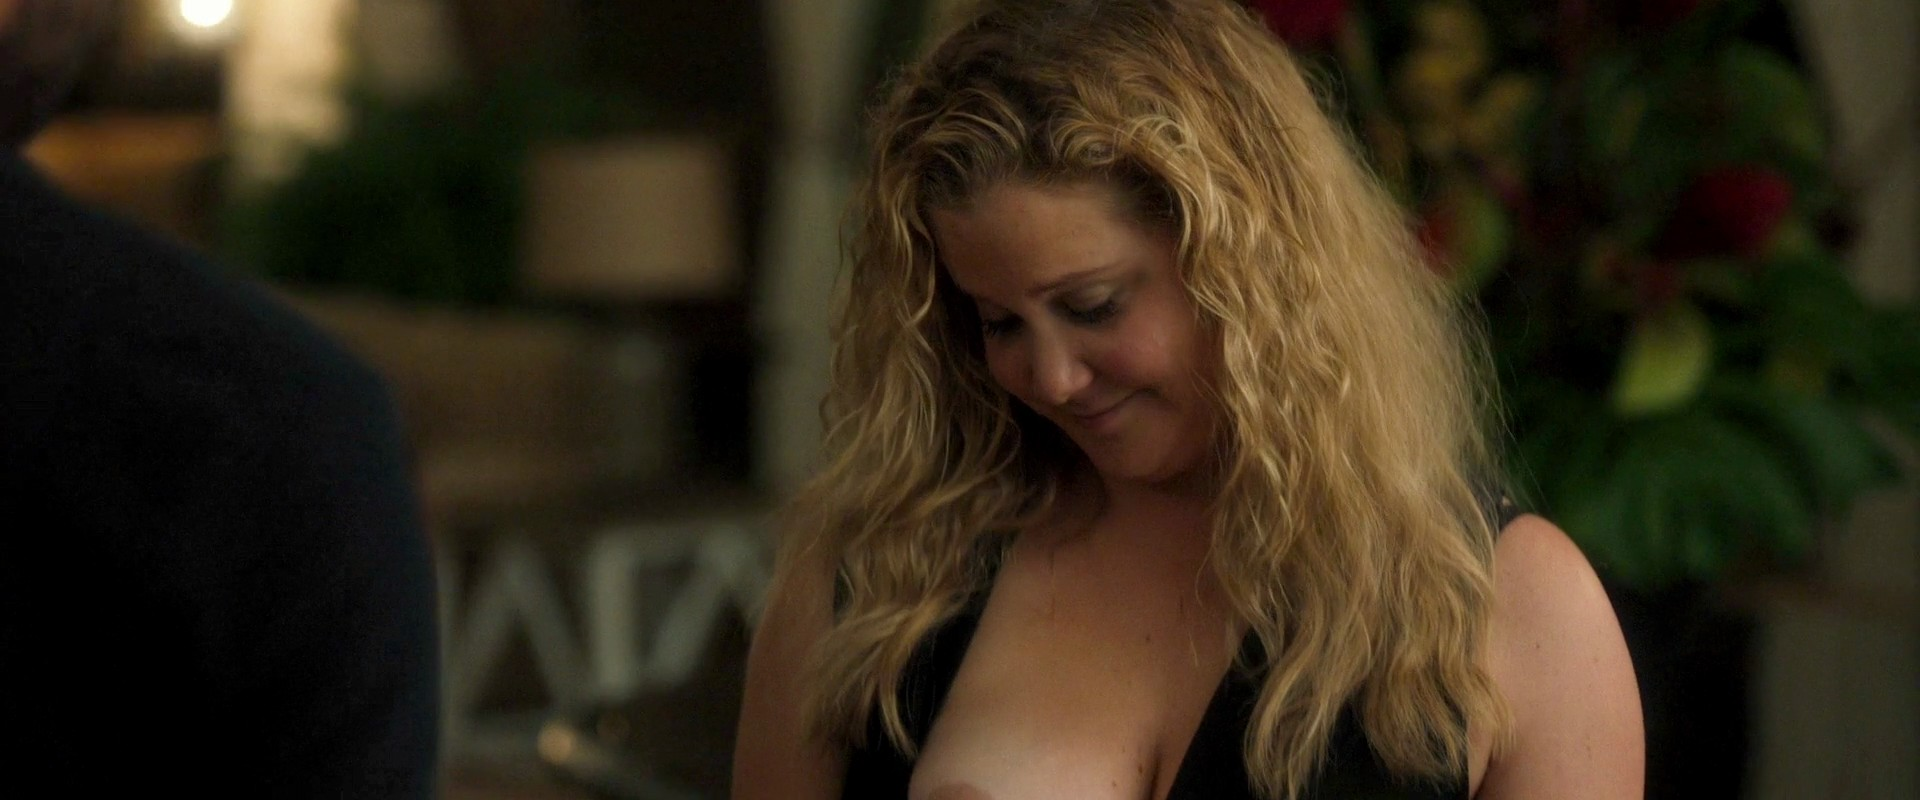 This Magnificent Amy Schumer Naked